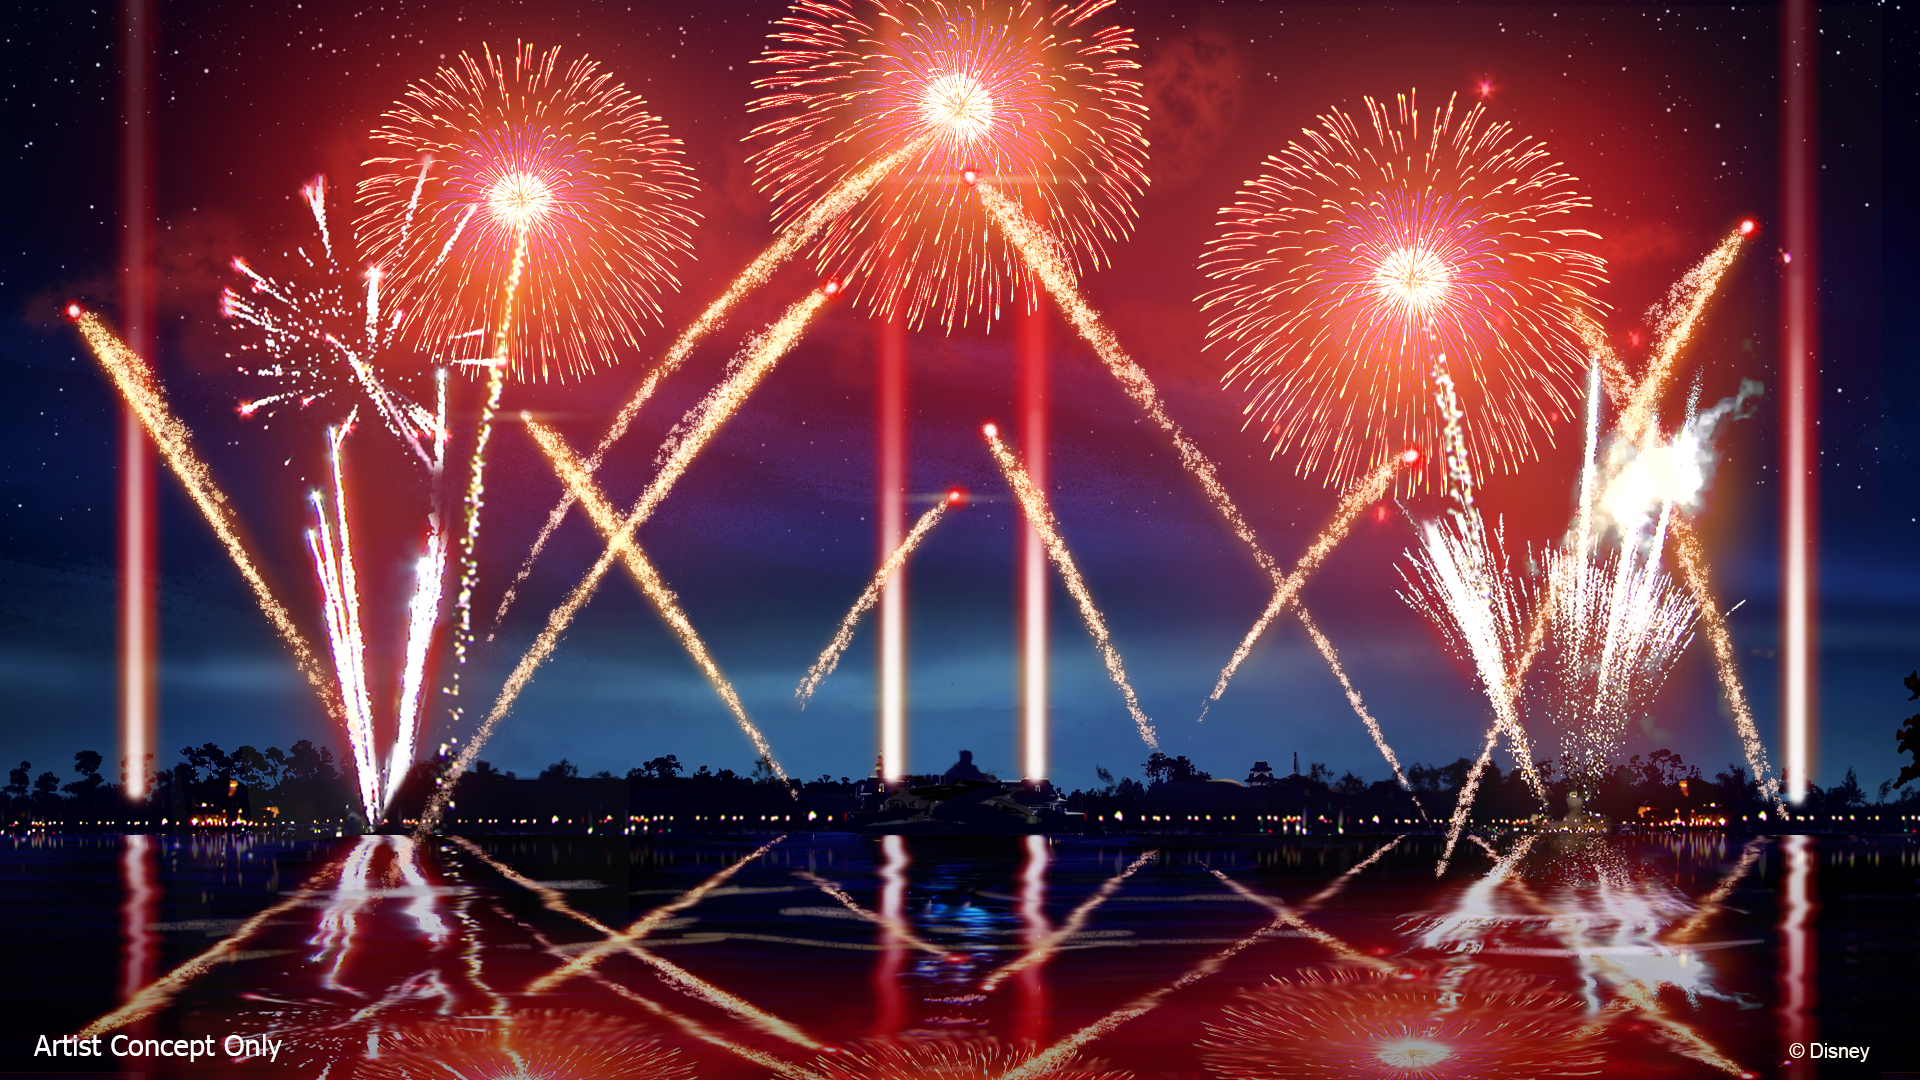 New Nighttime Spectacular 'Epcot Forever' to Debut Oct  1 at